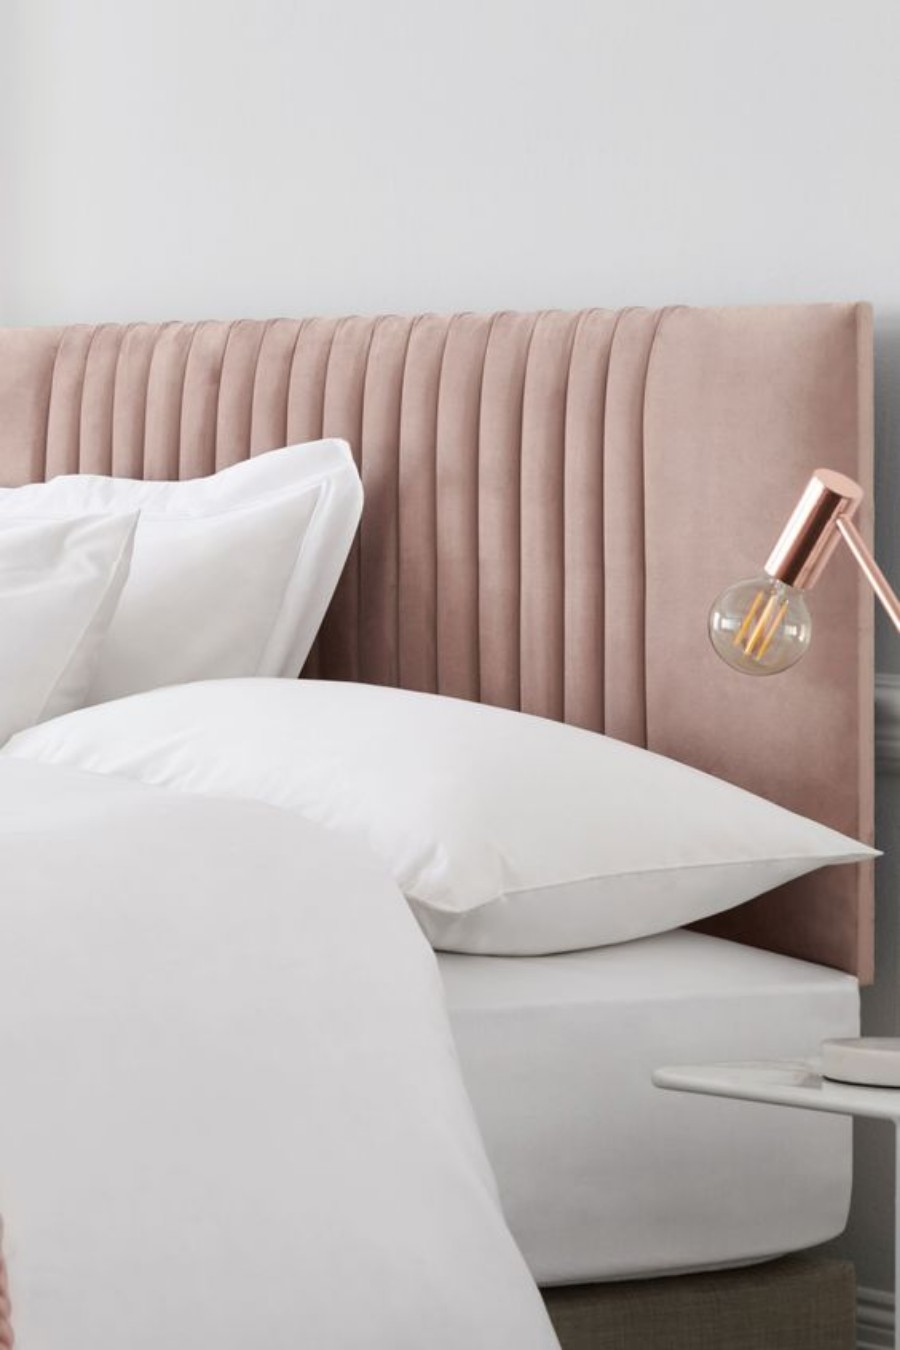 Trend Report - Incorporate Velvet Into Your Home Decor In A Stylish Way trend report Trend Report – Incorporate Velvet Into Your Home Decor In A Stylish Way Trend Report Incorporate Velvet Into Your Home Decor In A Stylish Way 4